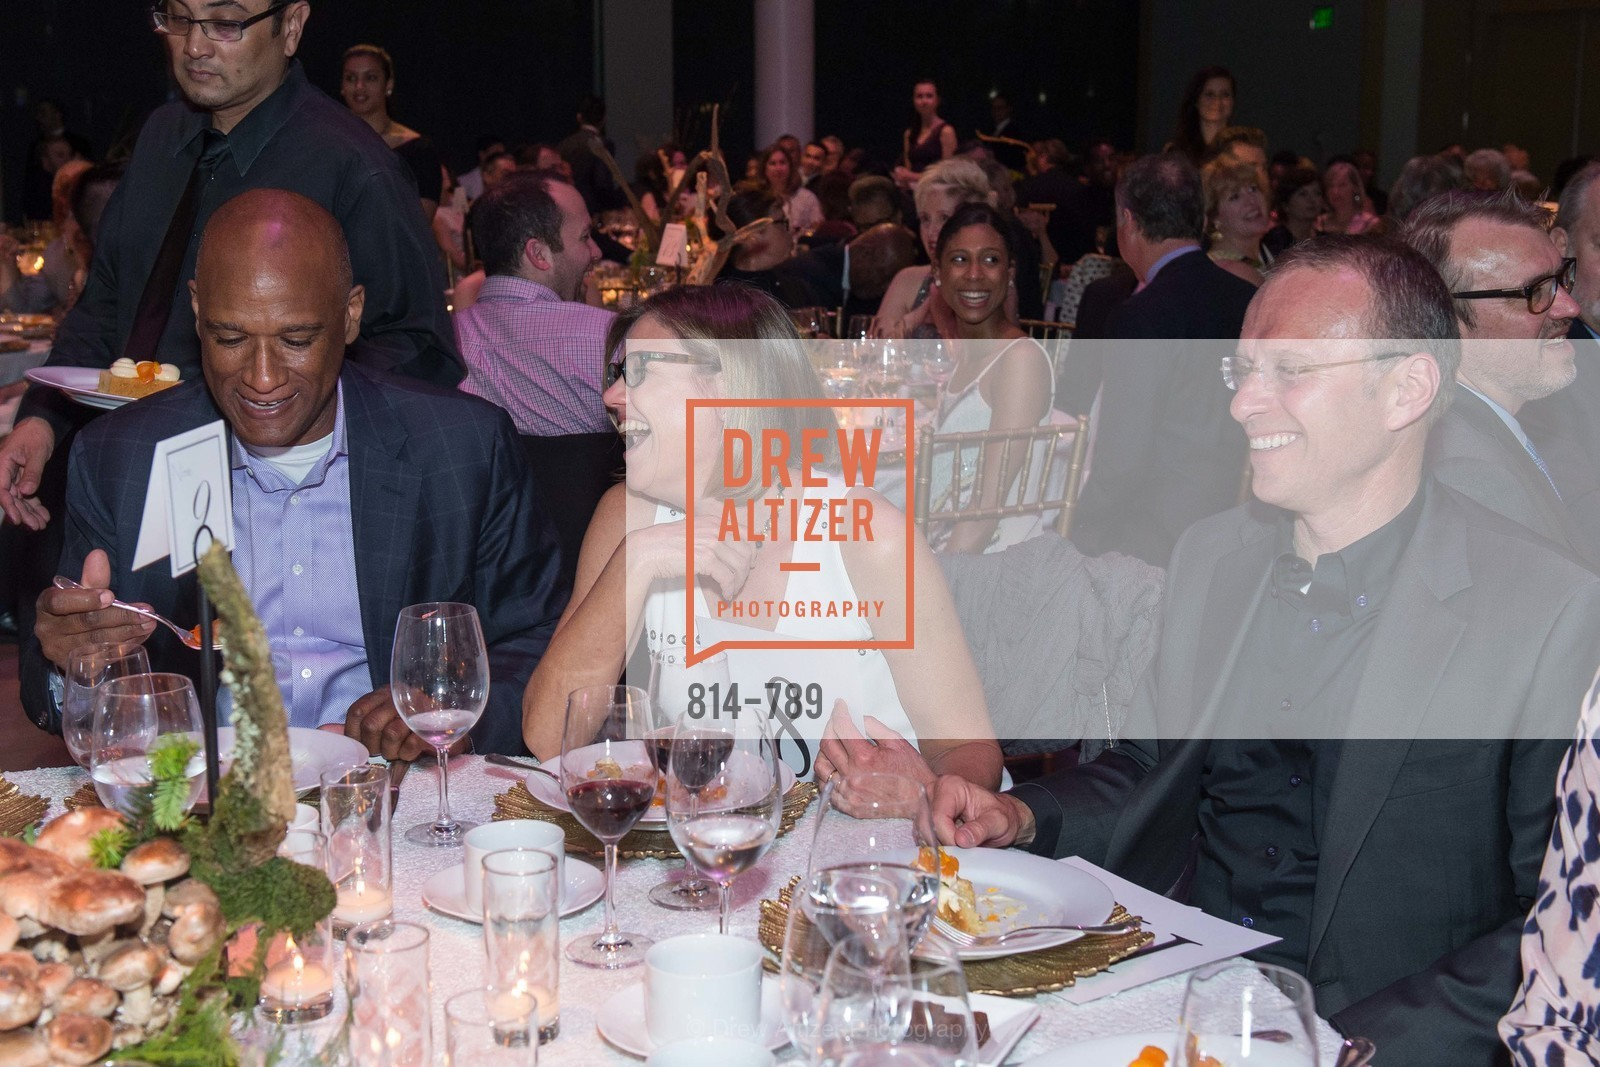 Extras, ALONZO KING LINE'S Ballet Spring Gala 2015, April 12th, 2015, Photo,Drew Altizer, Drew Altizer Photography, full-service agency, private events, San Francisco photographer, photographer california